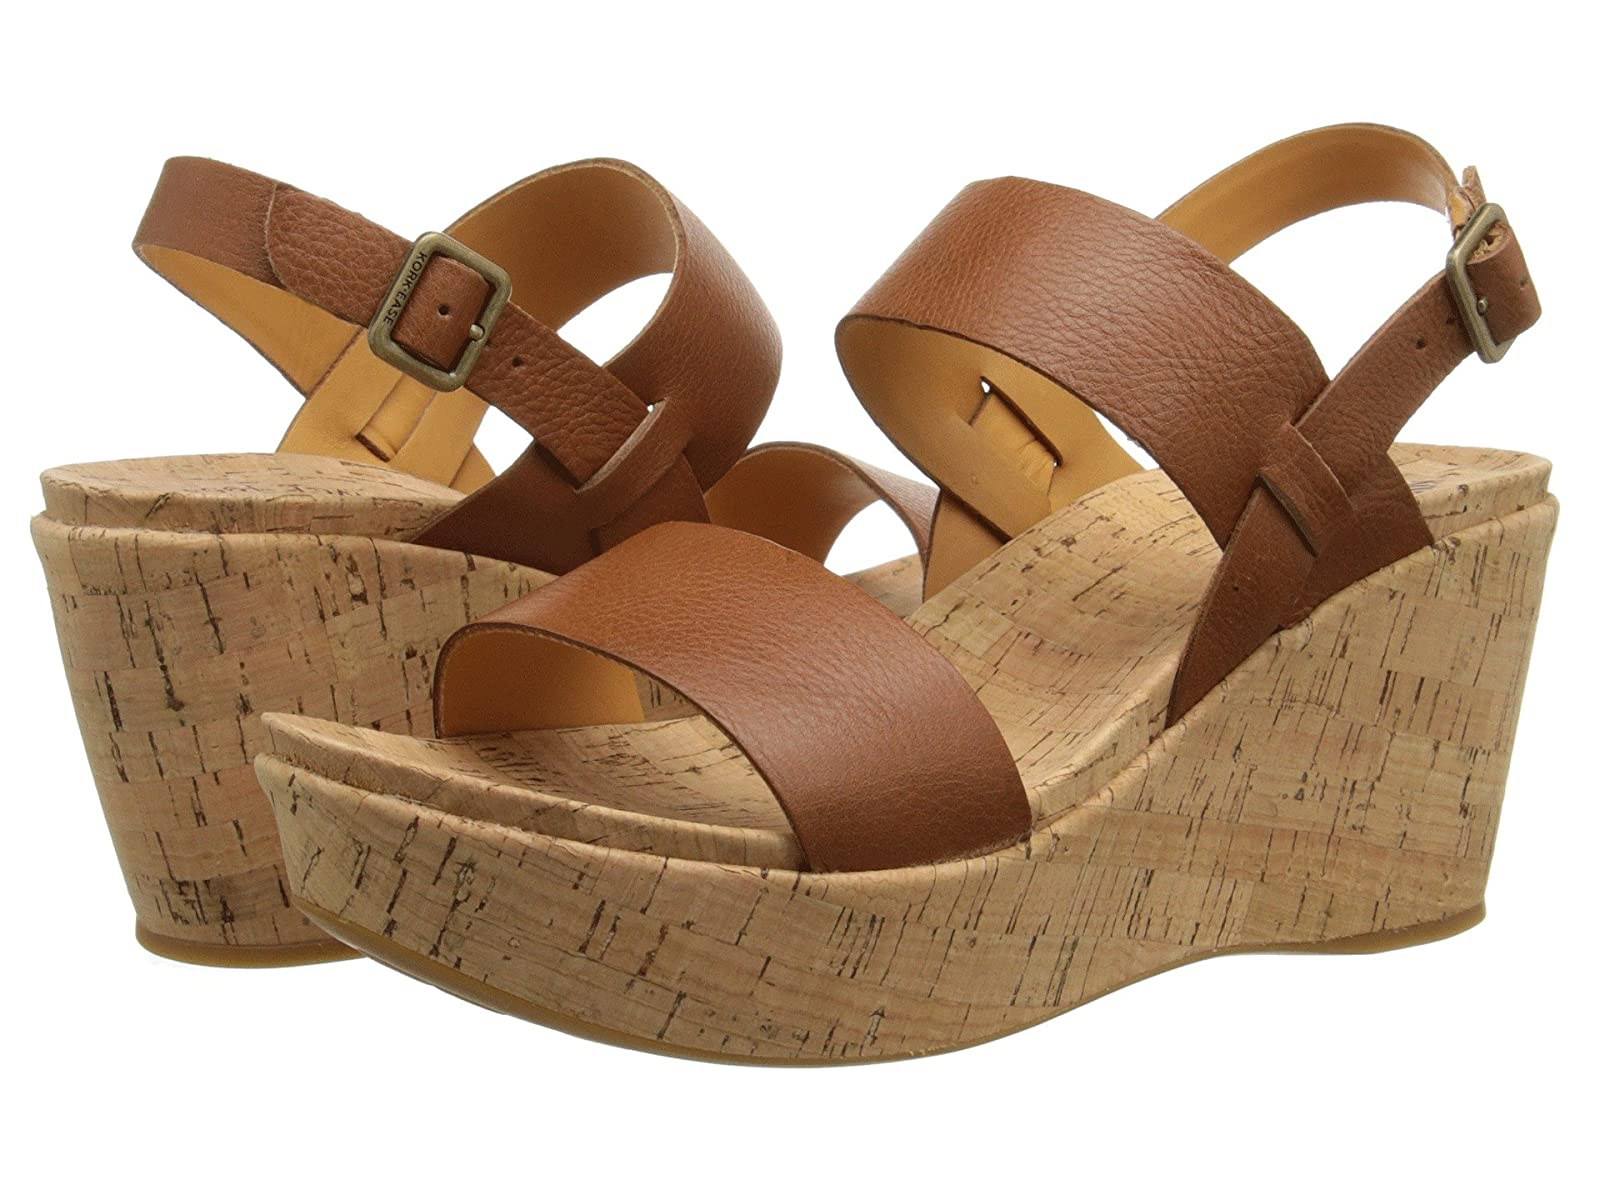 Kork-Ease AustinCheap and distinctive eye-catching shoes